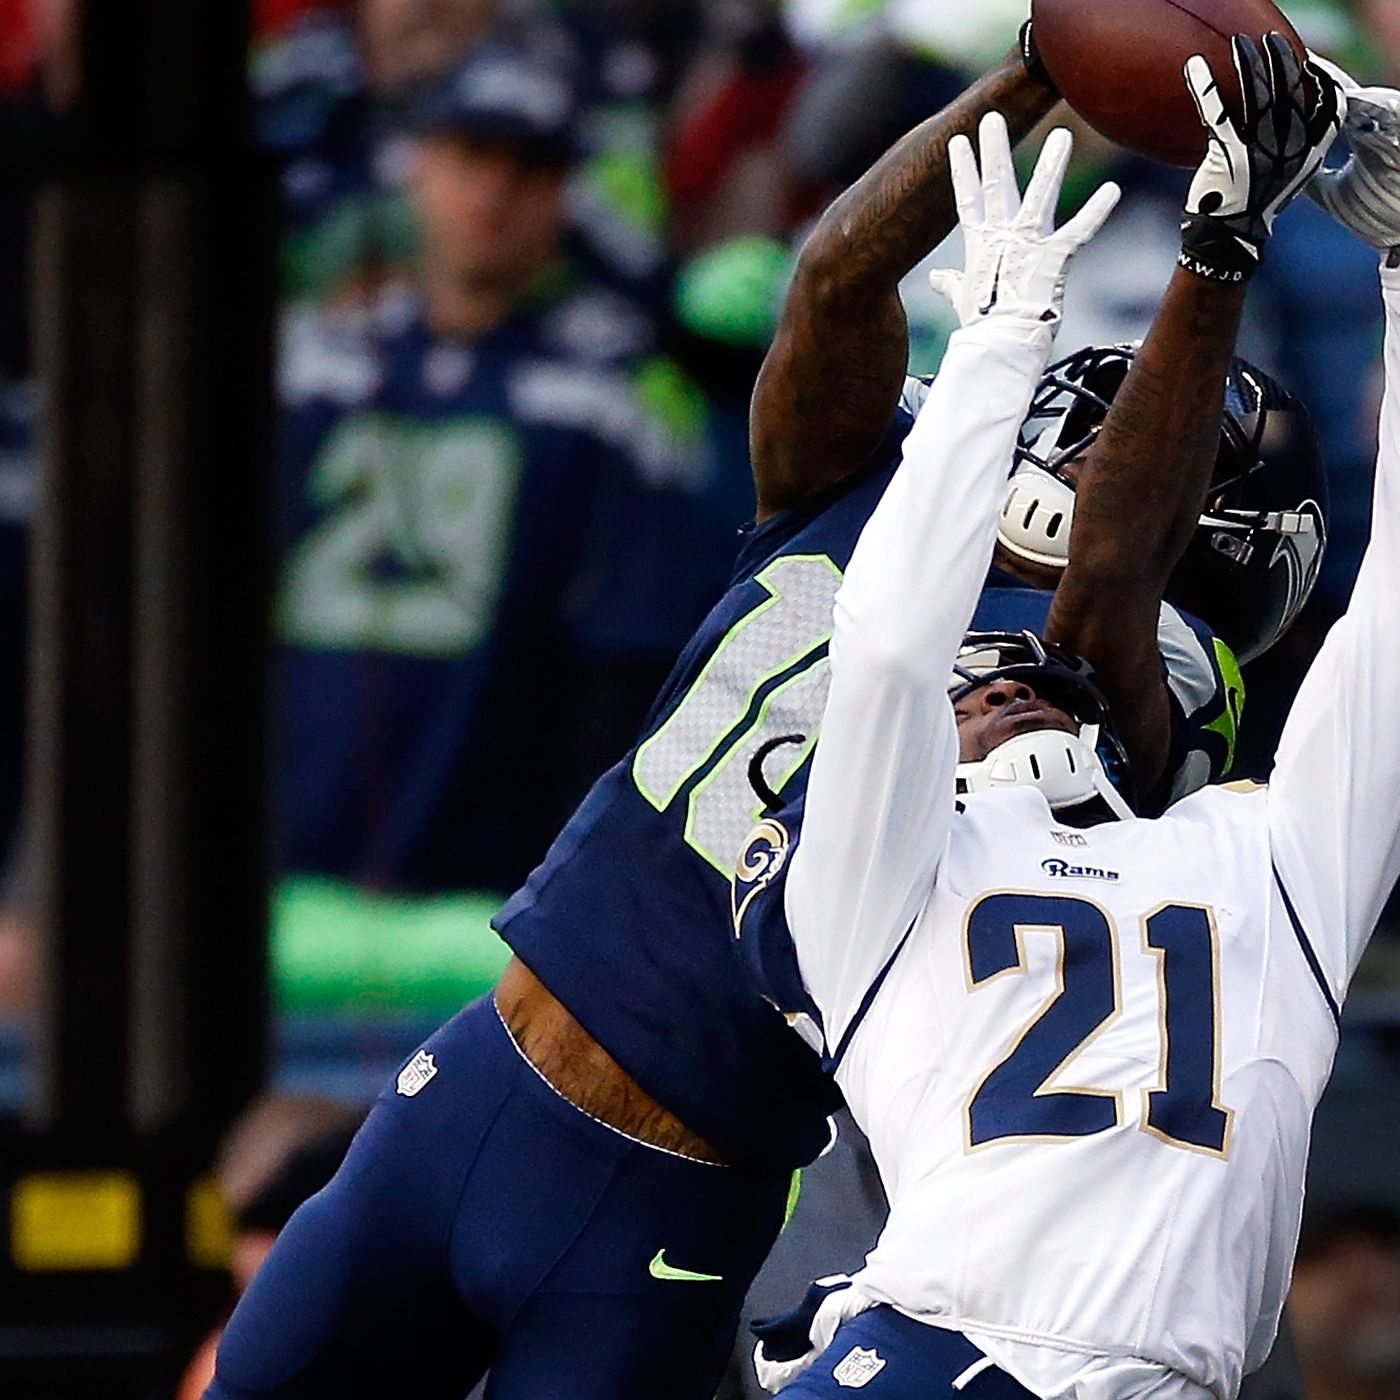 Seahawks Vs Rams Final Score Defensive Turnovers Lift Seahawks To Nfc West Title And Home Field Advantage Throughout Playoffs Field Gulls